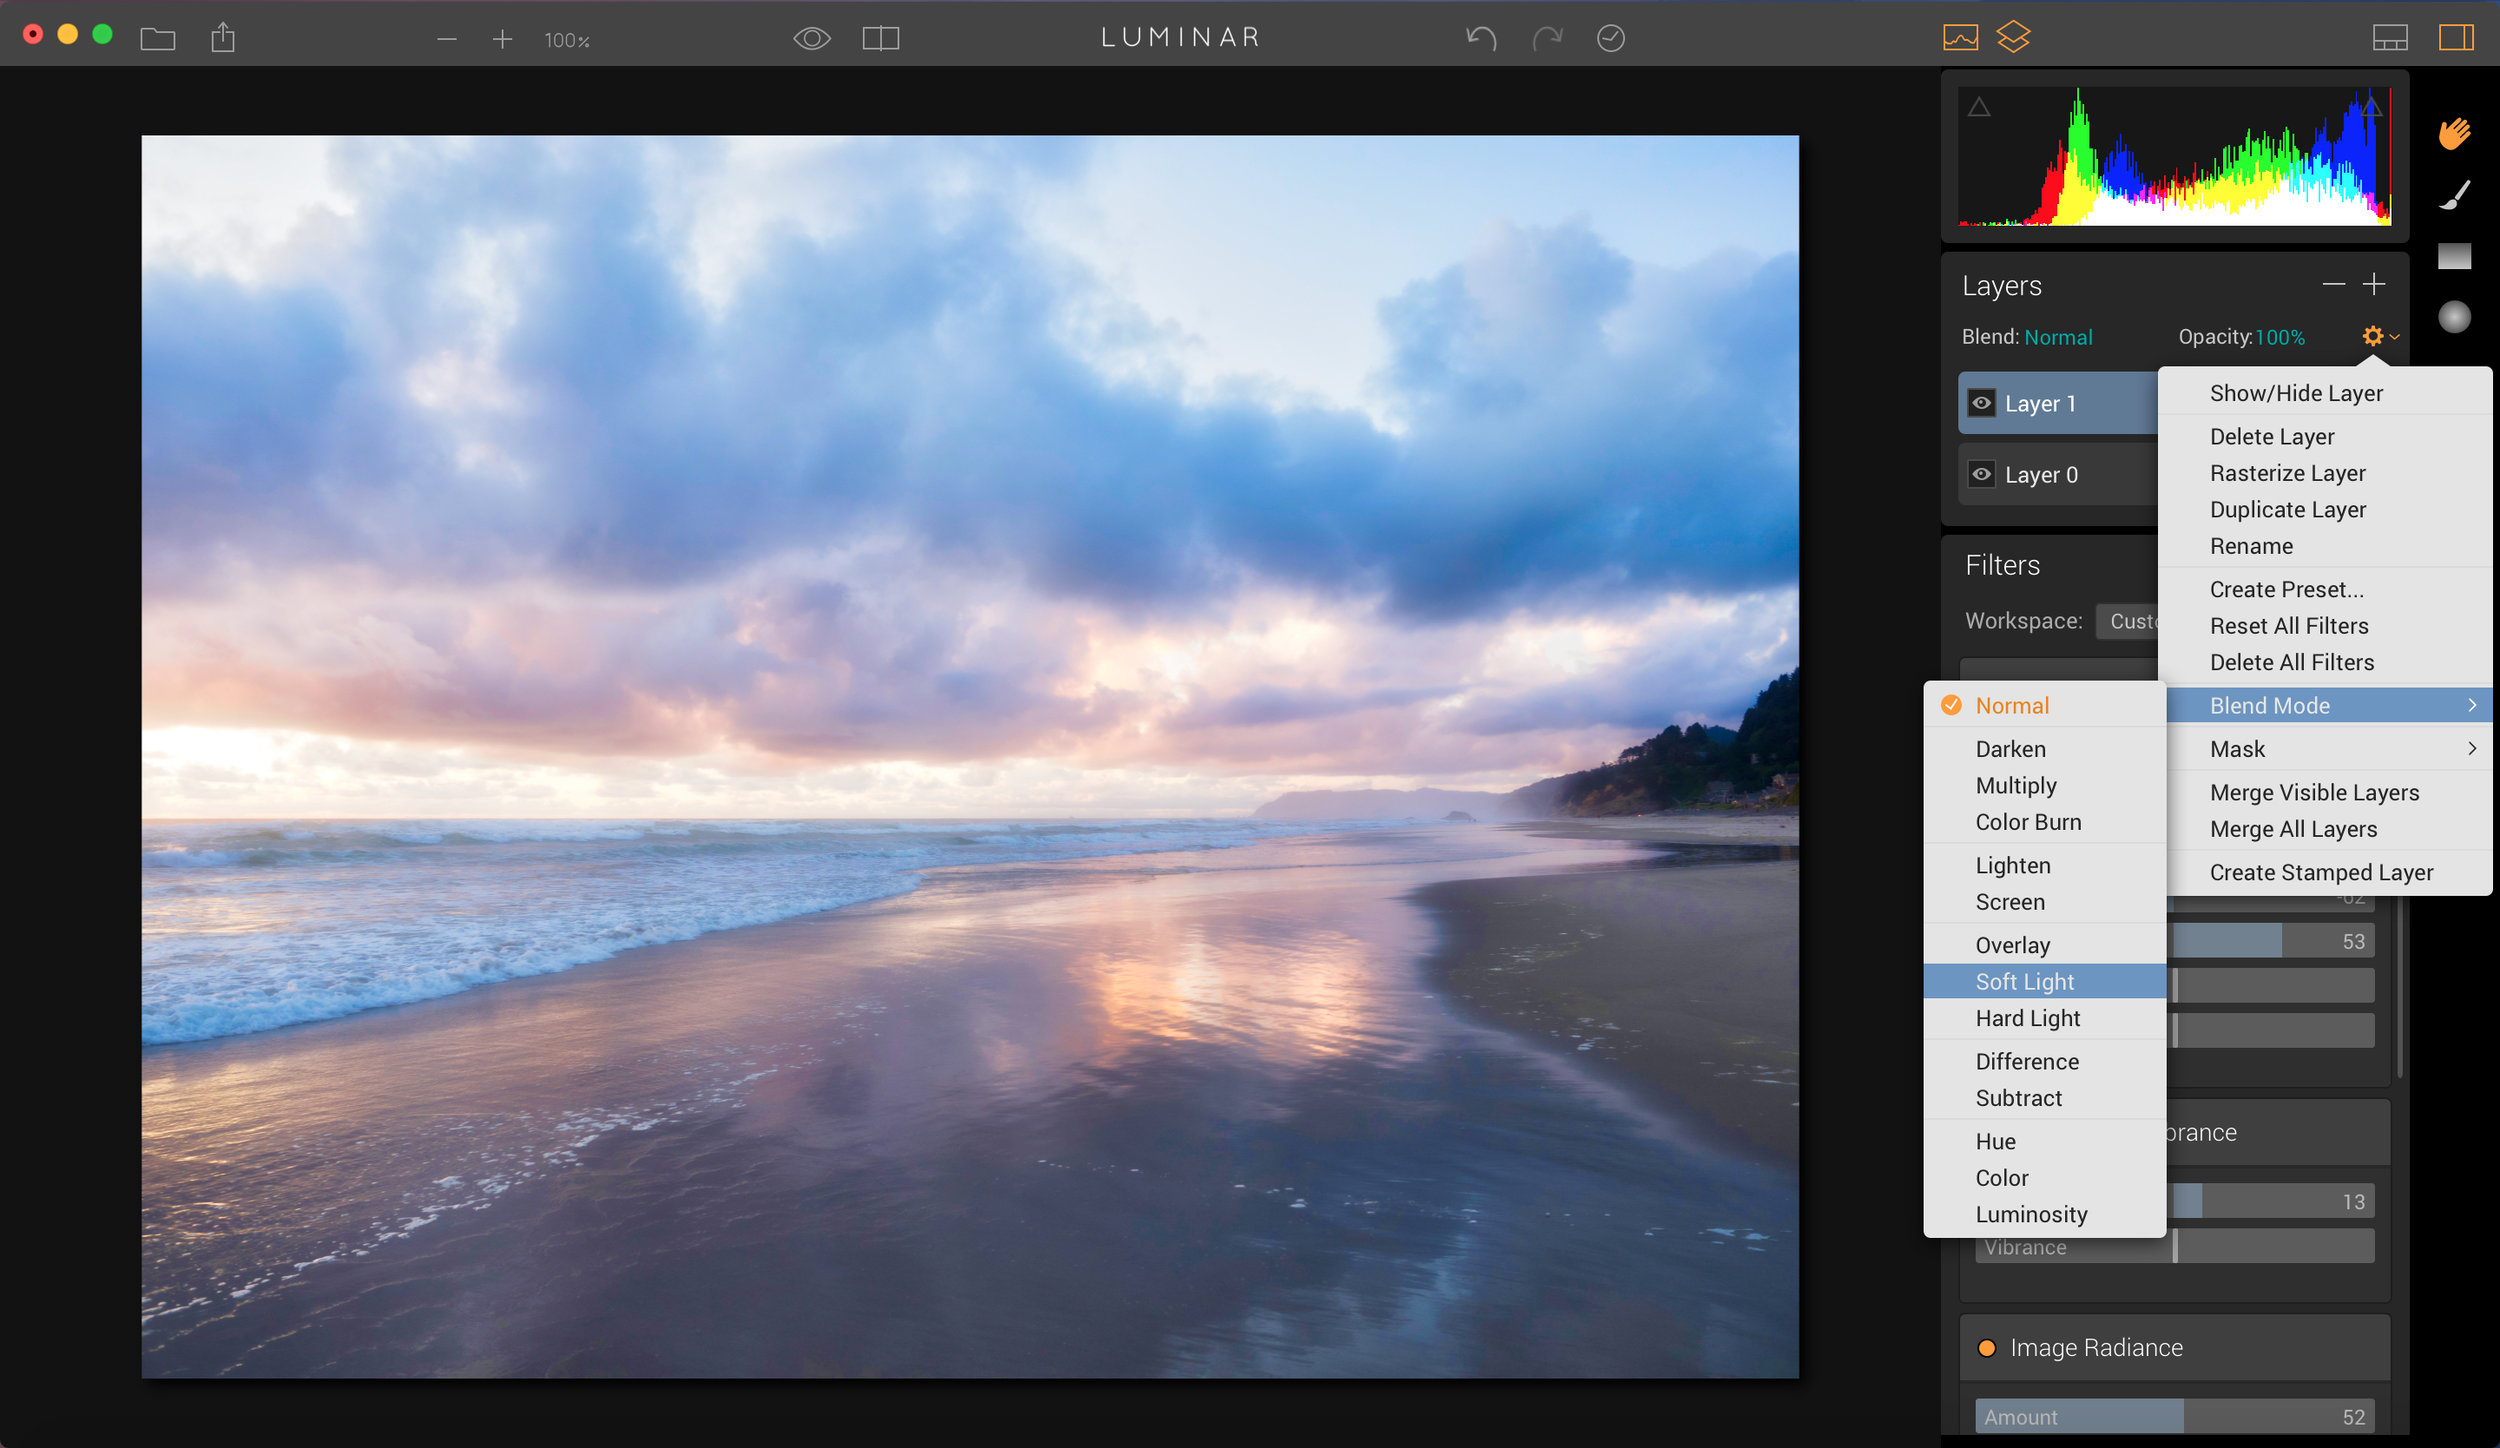 You can choose to blend the layers together in various ways using blend modes. They are accessible via the drop down menu that looks like a little gear icon.